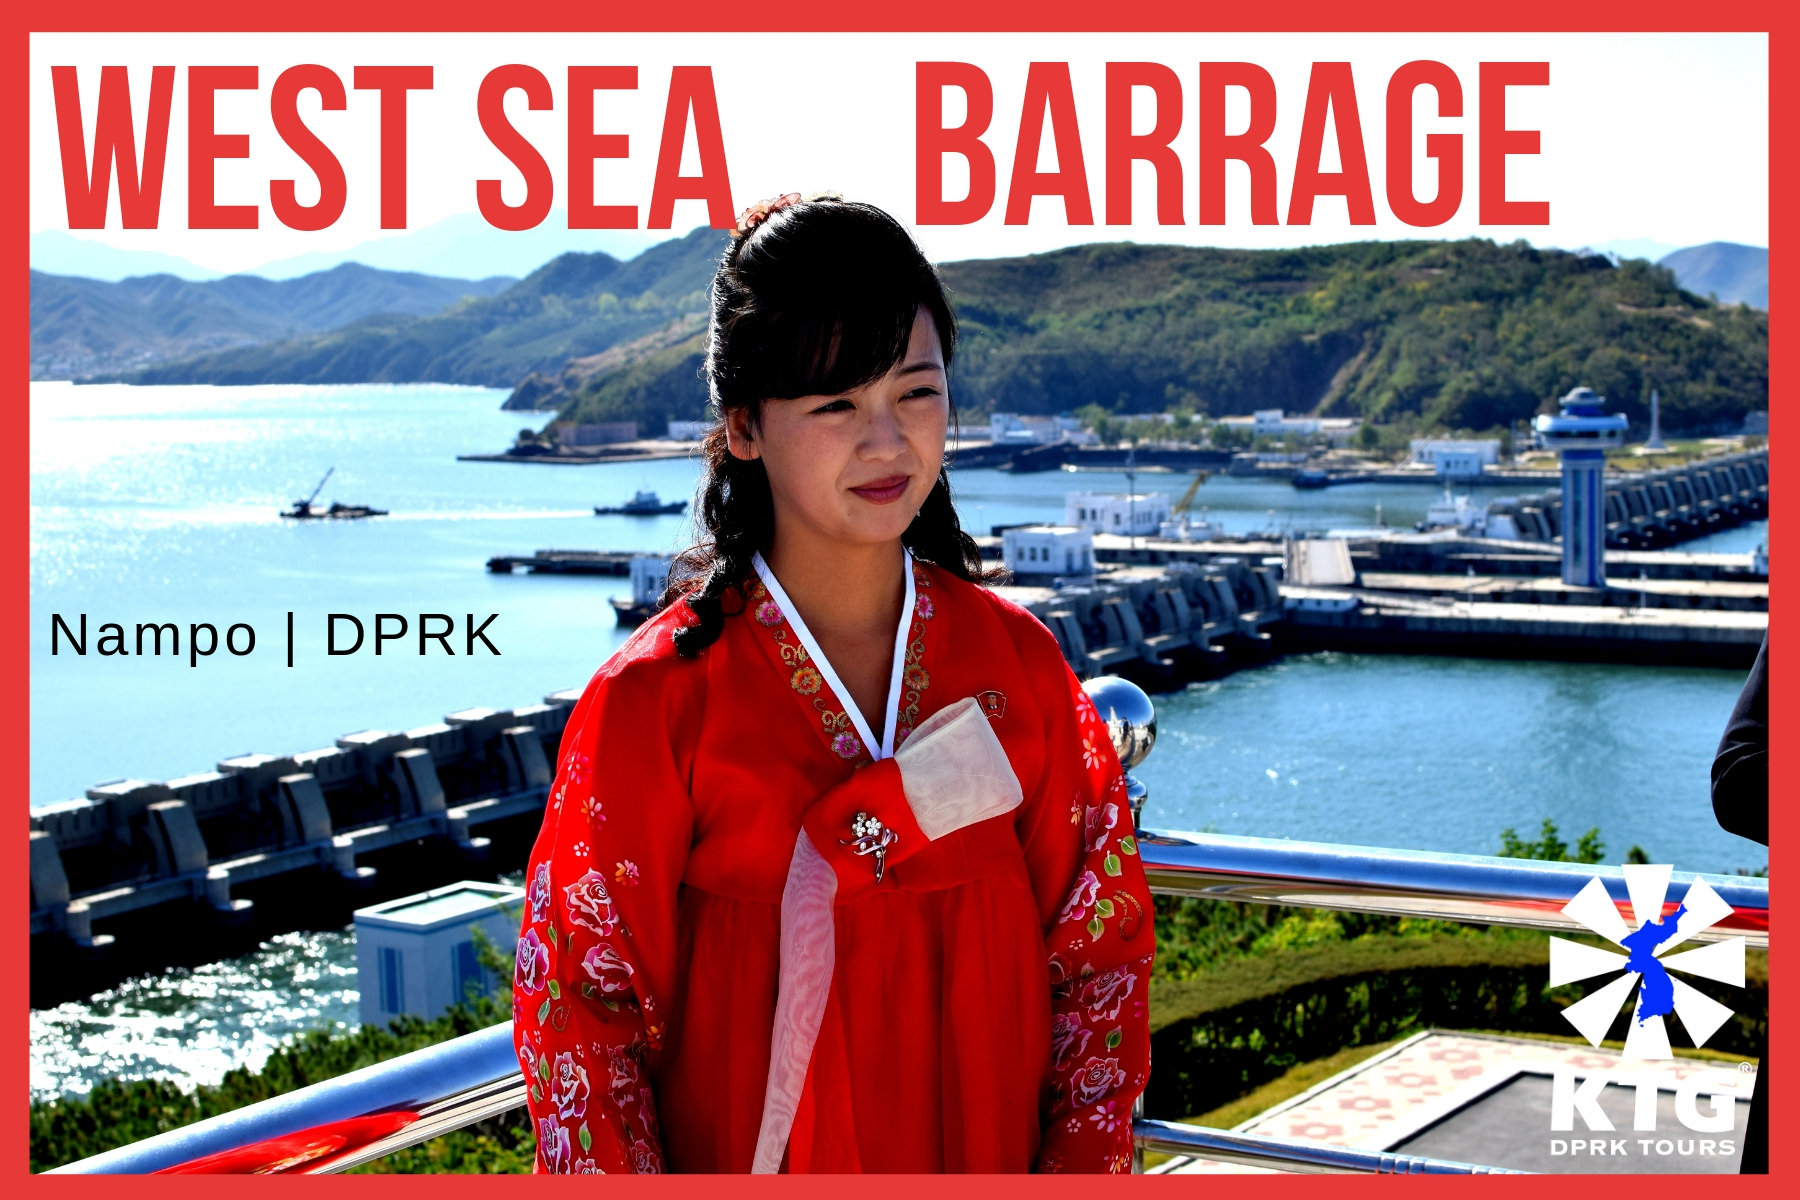 The West Sea Barrage in North Korea